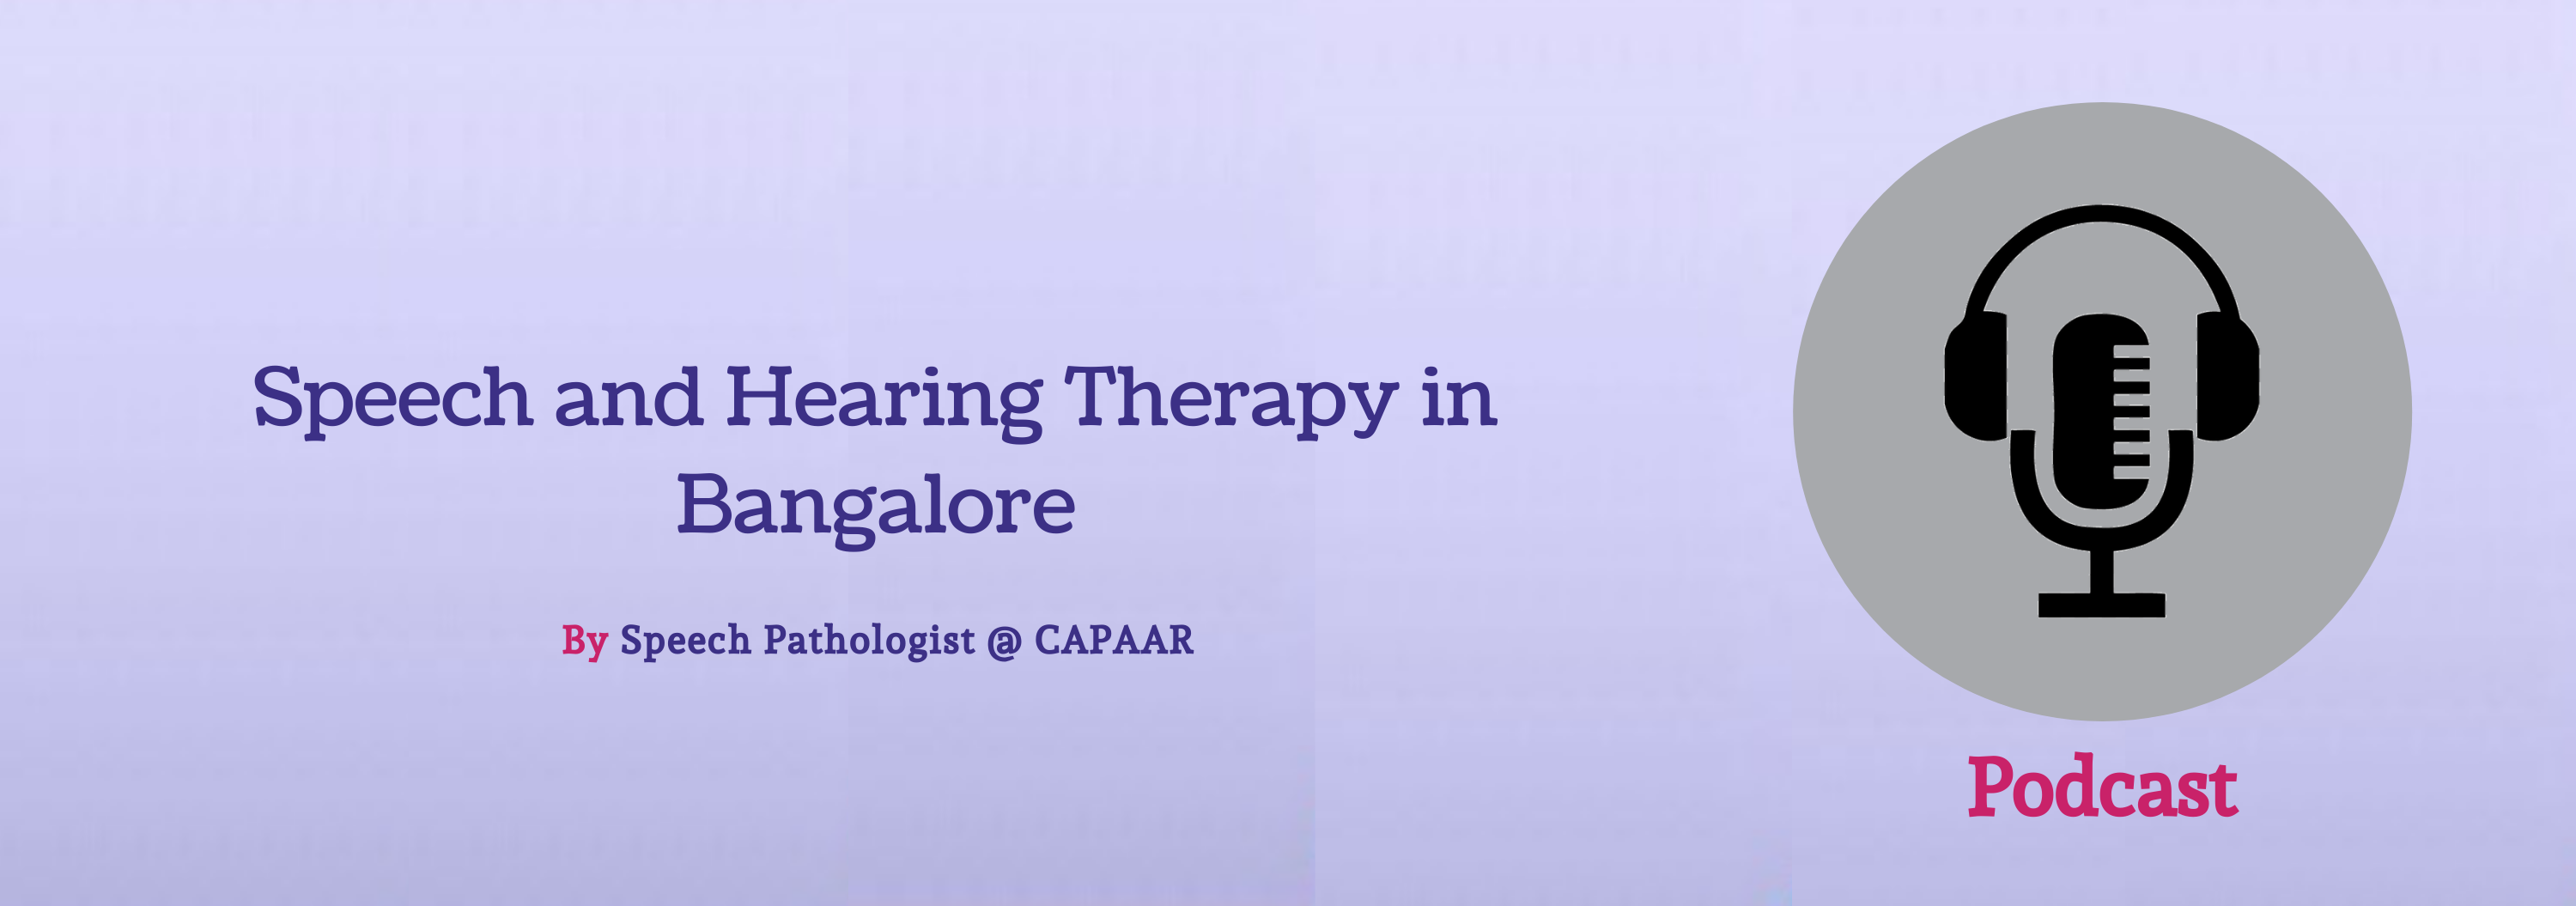 Speech and Hearing Therapy in Bangalore